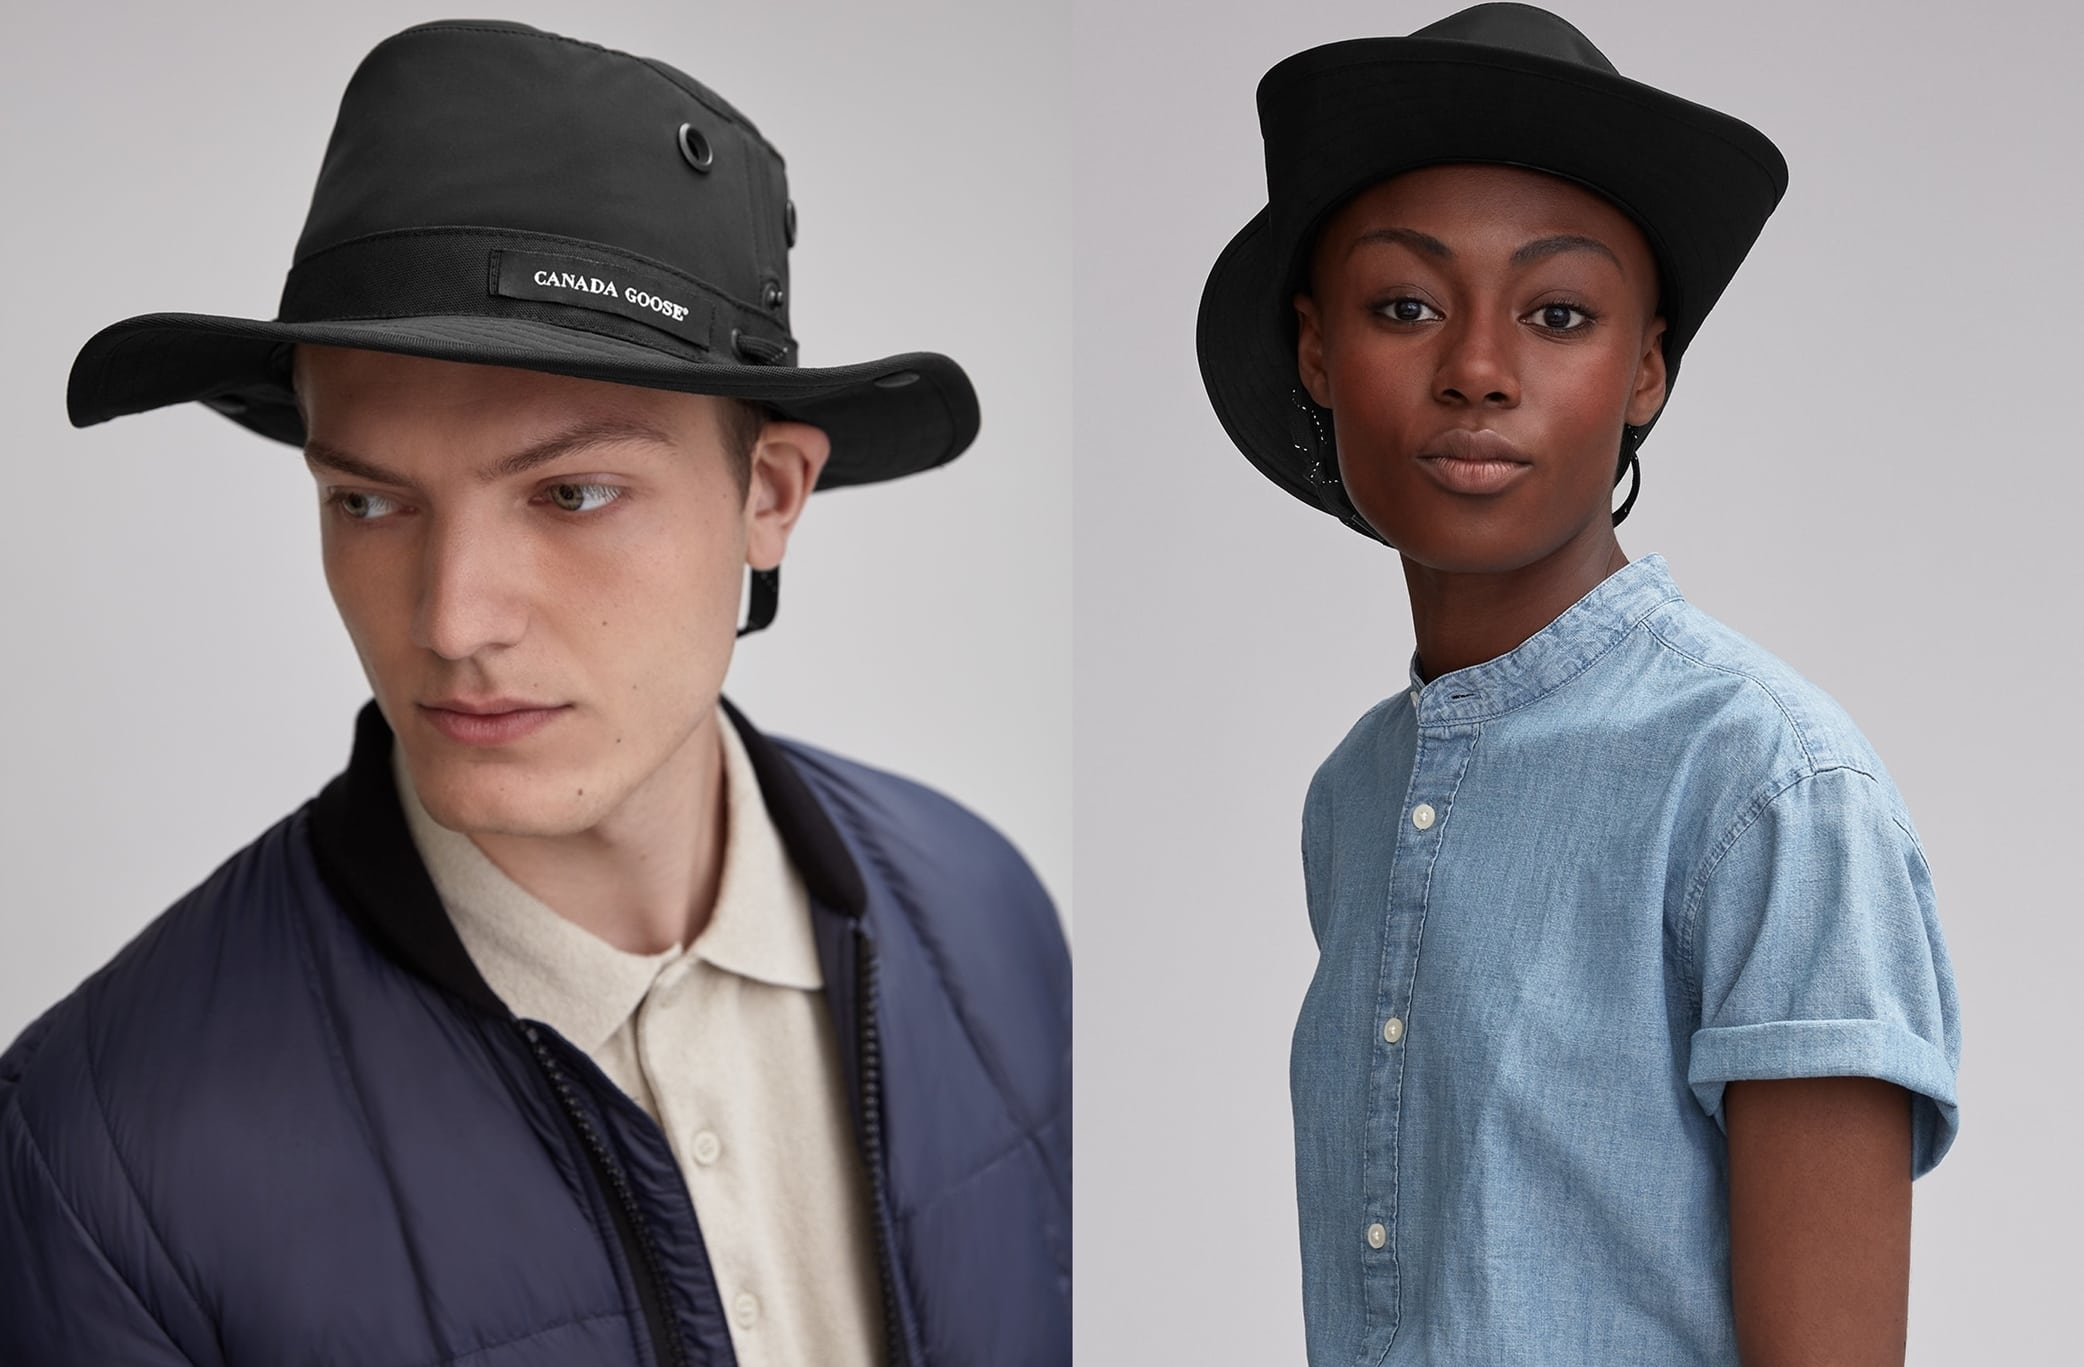 Canada Goose and Tilley partnered to create an exclusive hat with fabric to block harsh winds and rain